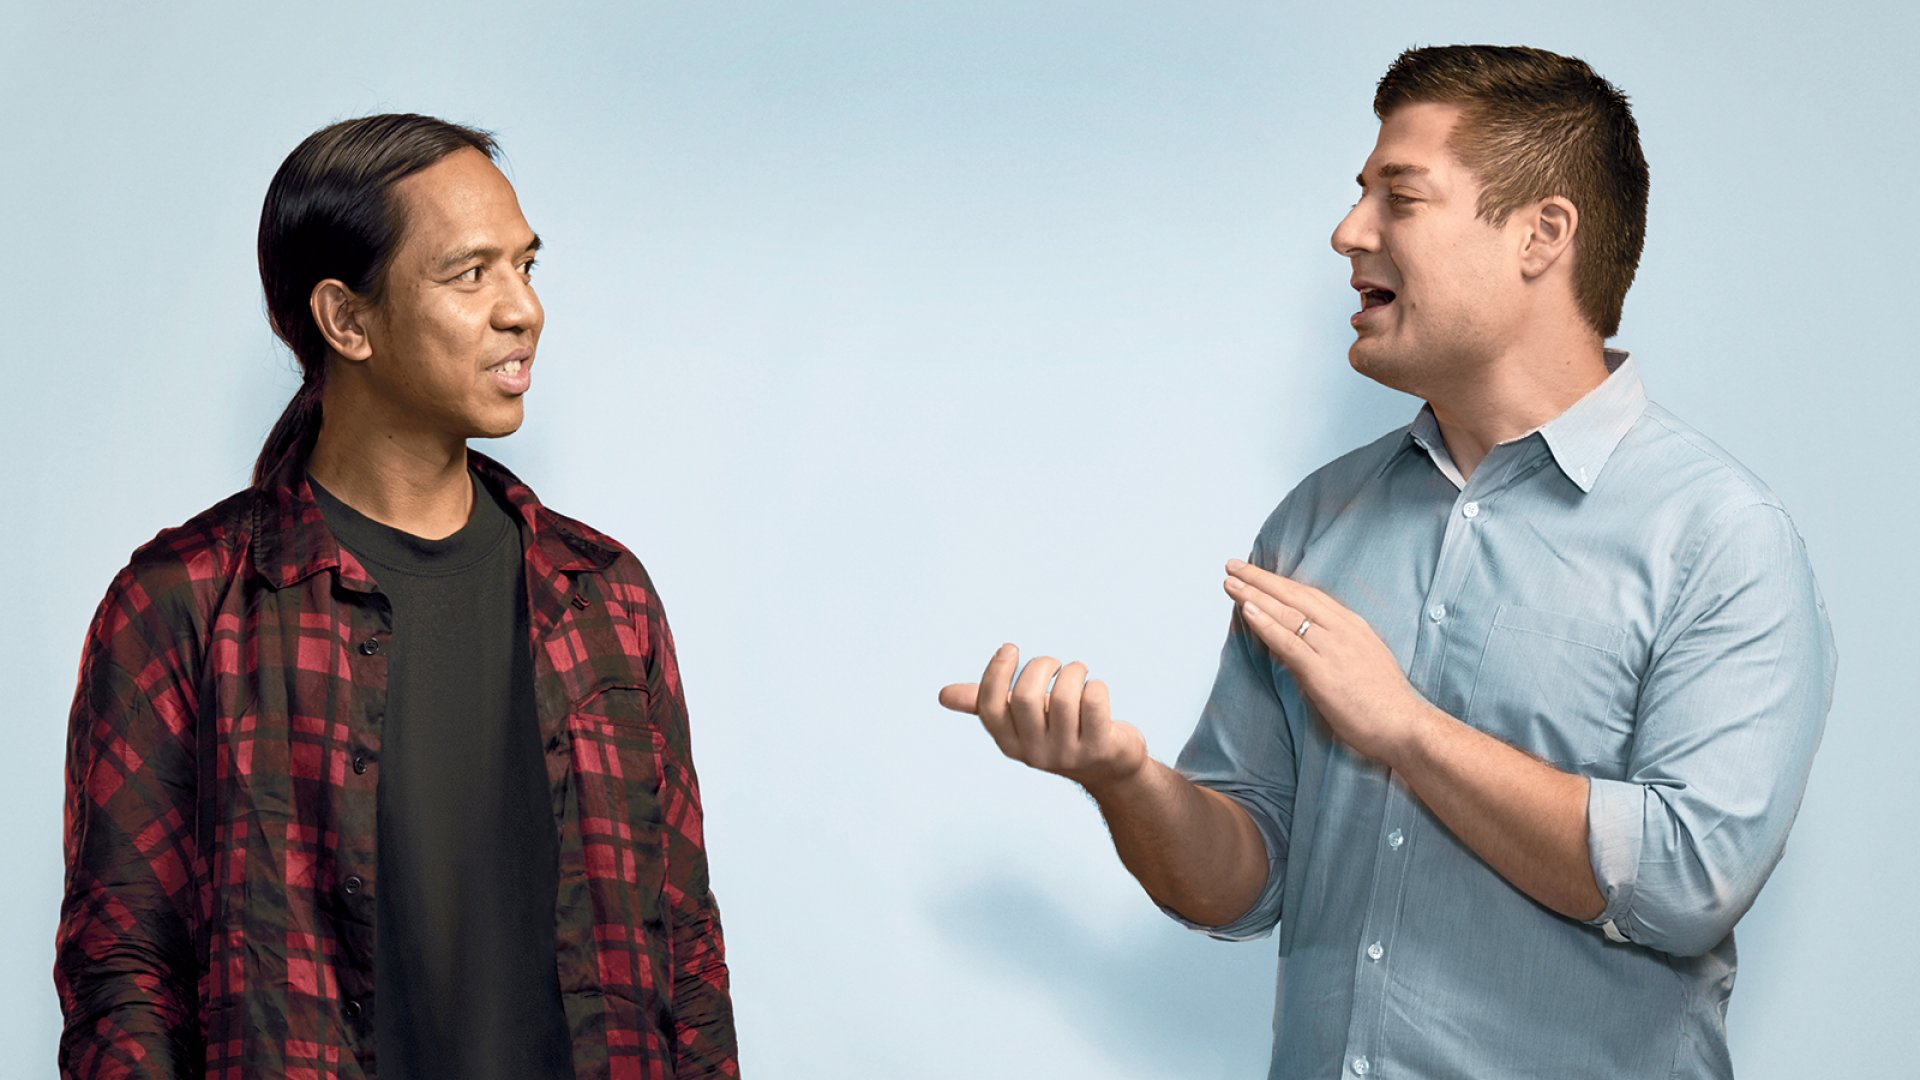 Revolve co-CEOs Michael Mente (left) and Mike Karanikolas. Mente majored in finance in college, but focuses on Revolve's creative side. Karanikolas is Revolve's analytical brain—and its three-time fantasy football champ.